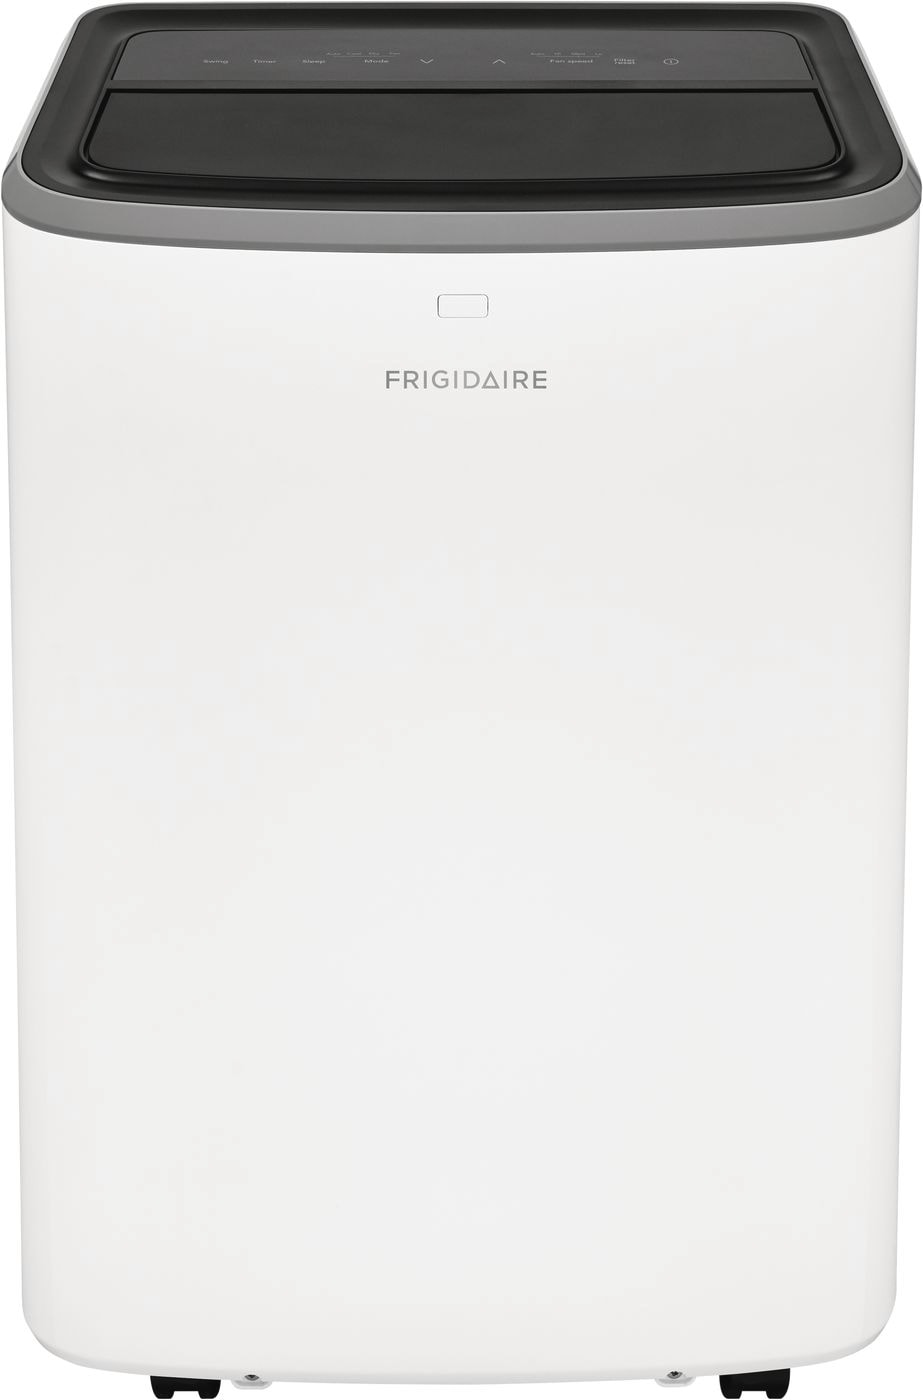 Frigidaire 13,000 BTU Portable Room Air Conditioner with Dehumidifier Mode